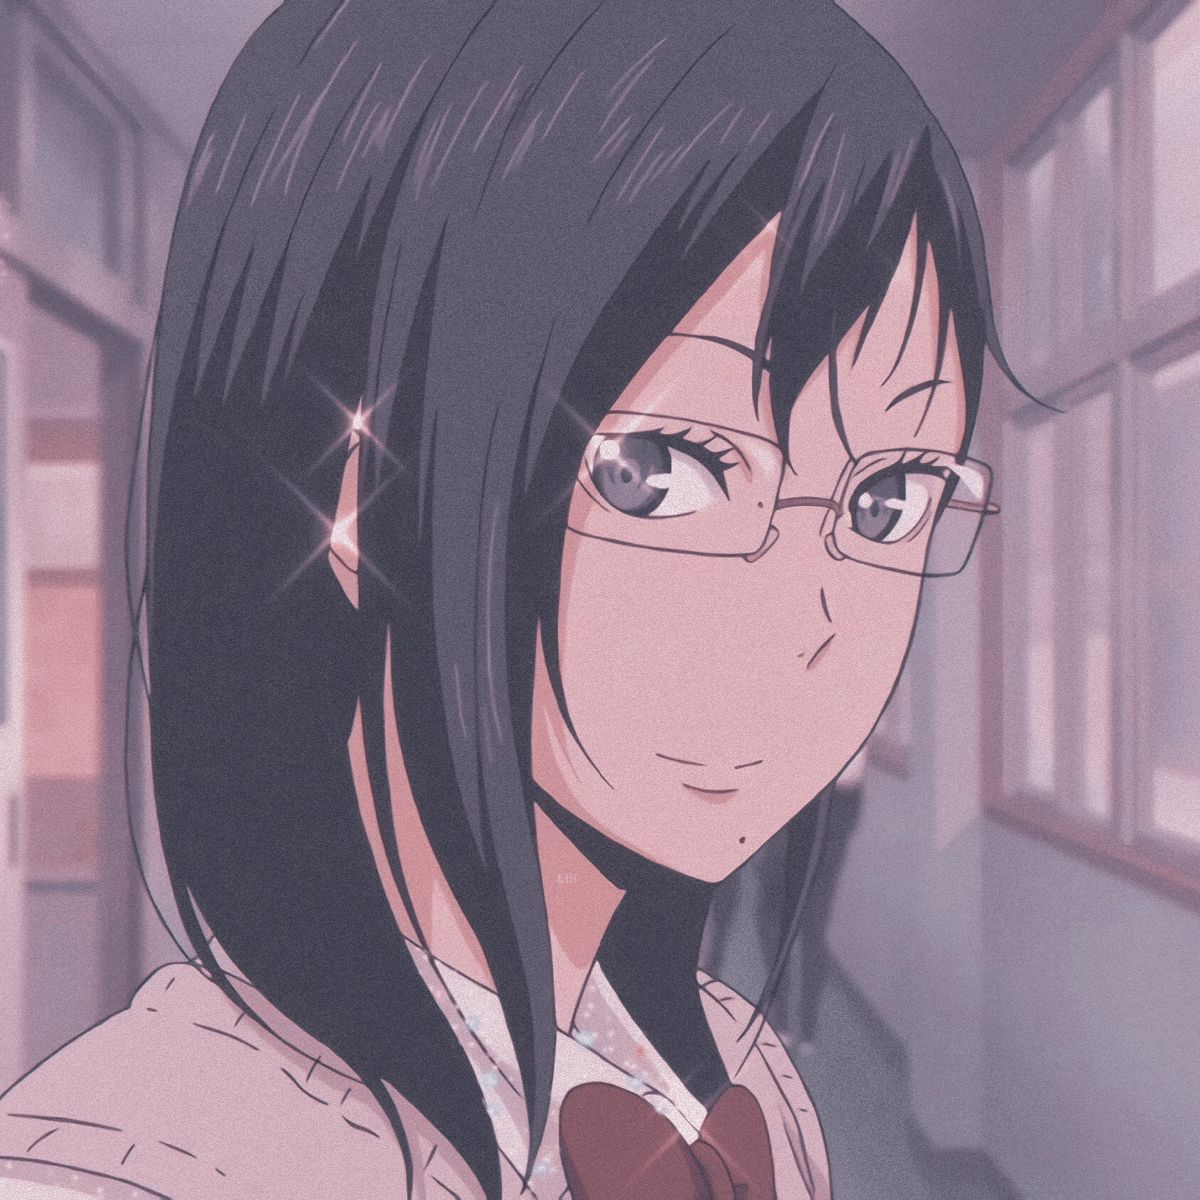 Kiyoko In 2020 Aesthetic Anime Anime Icons Anime